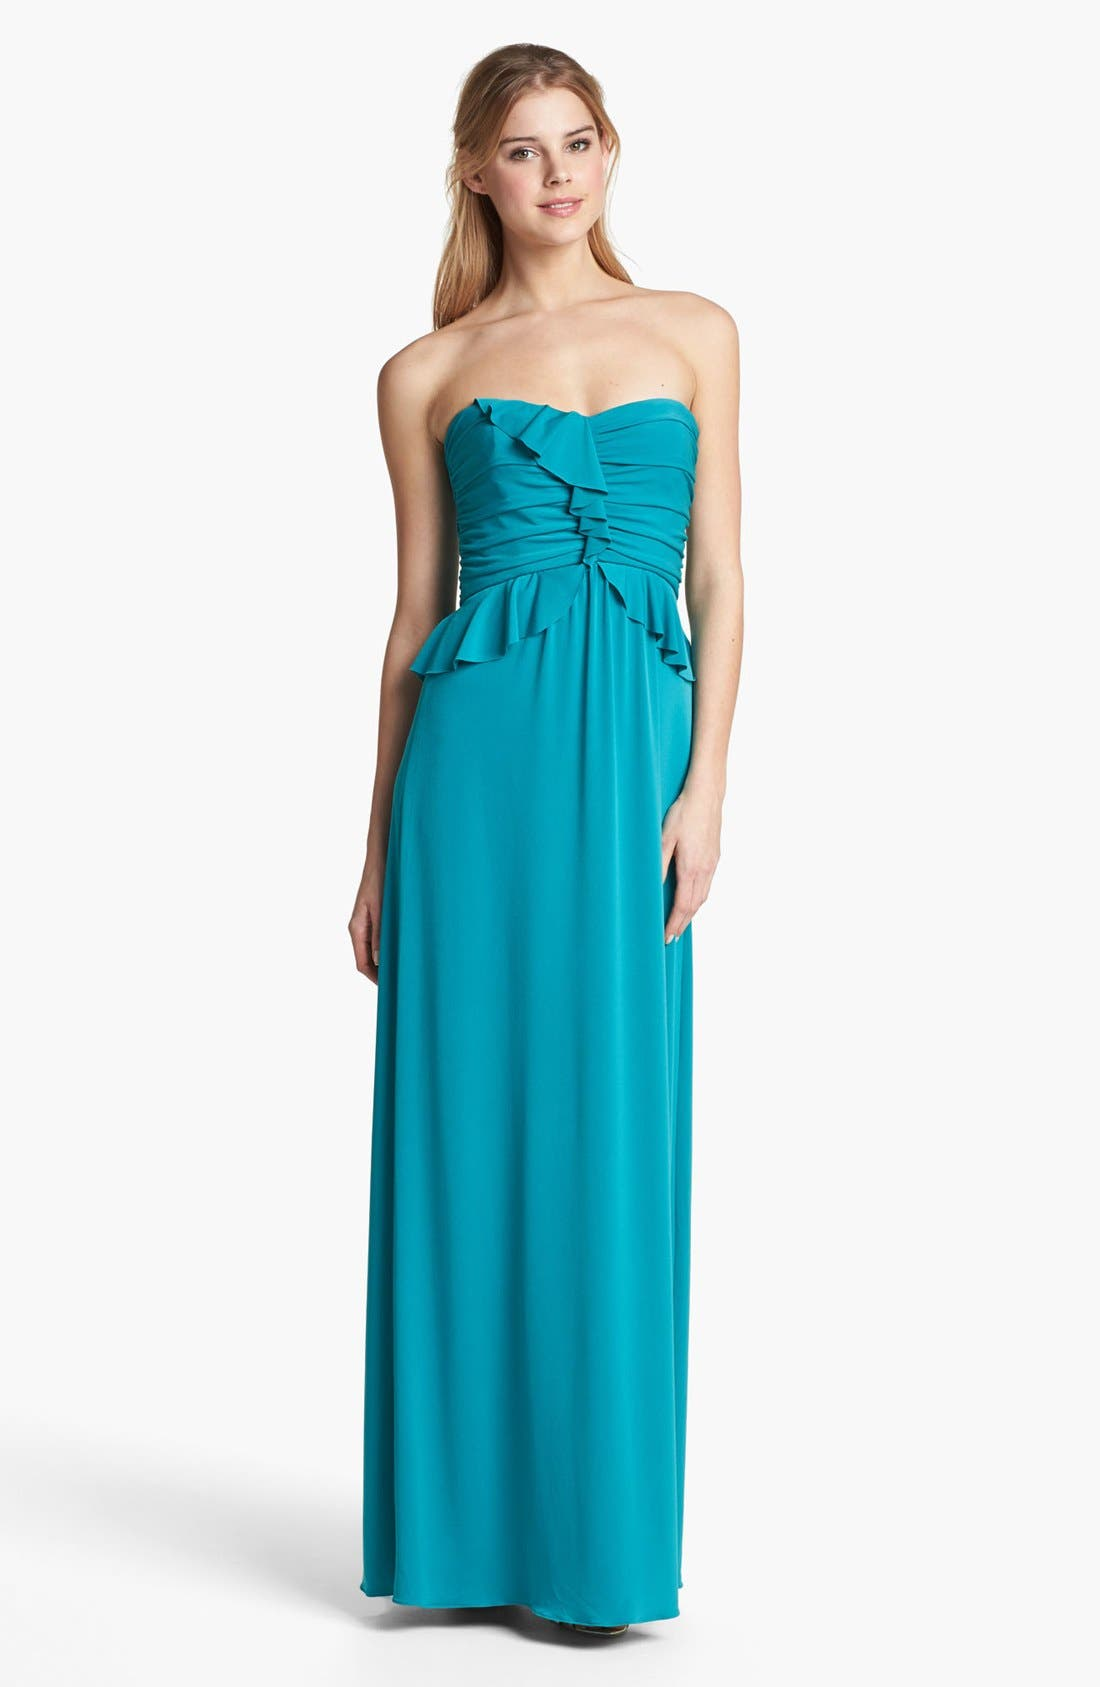 Alternate Image 1 Selected - Amsale Strapless Ruffled Peplum Jersey Gown